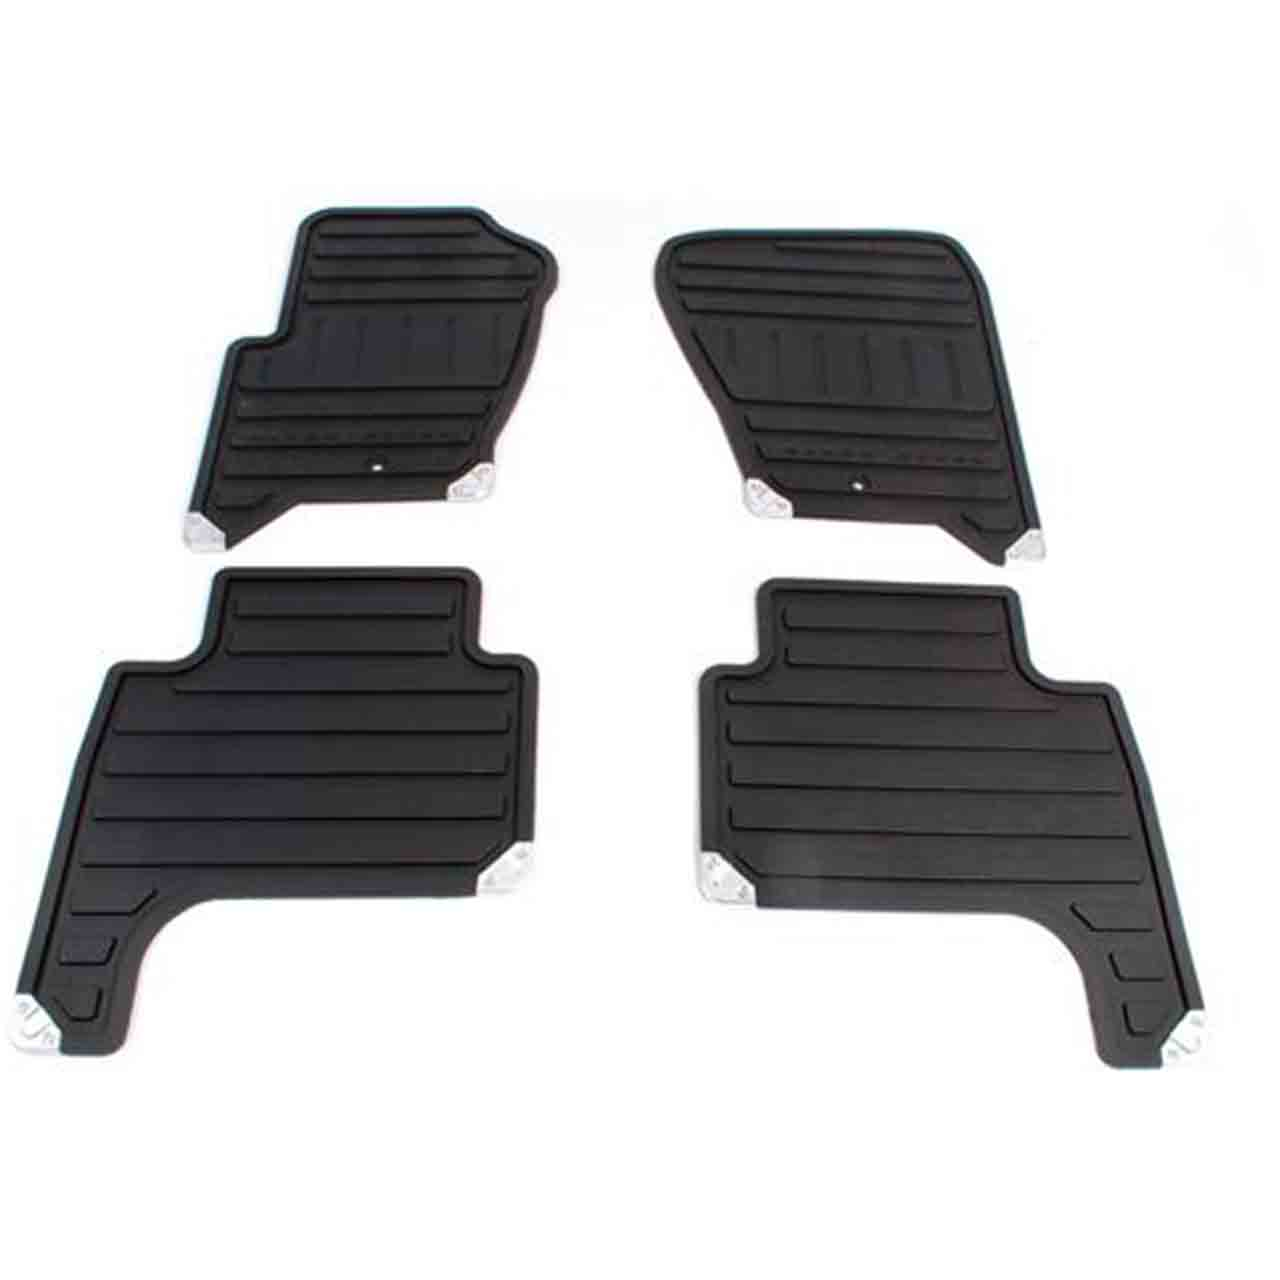 Set Tappetini Gomma Range Rover Sport Lhd Anteriore-Posteriore Range Rover Sport Land Rover GR2-07570